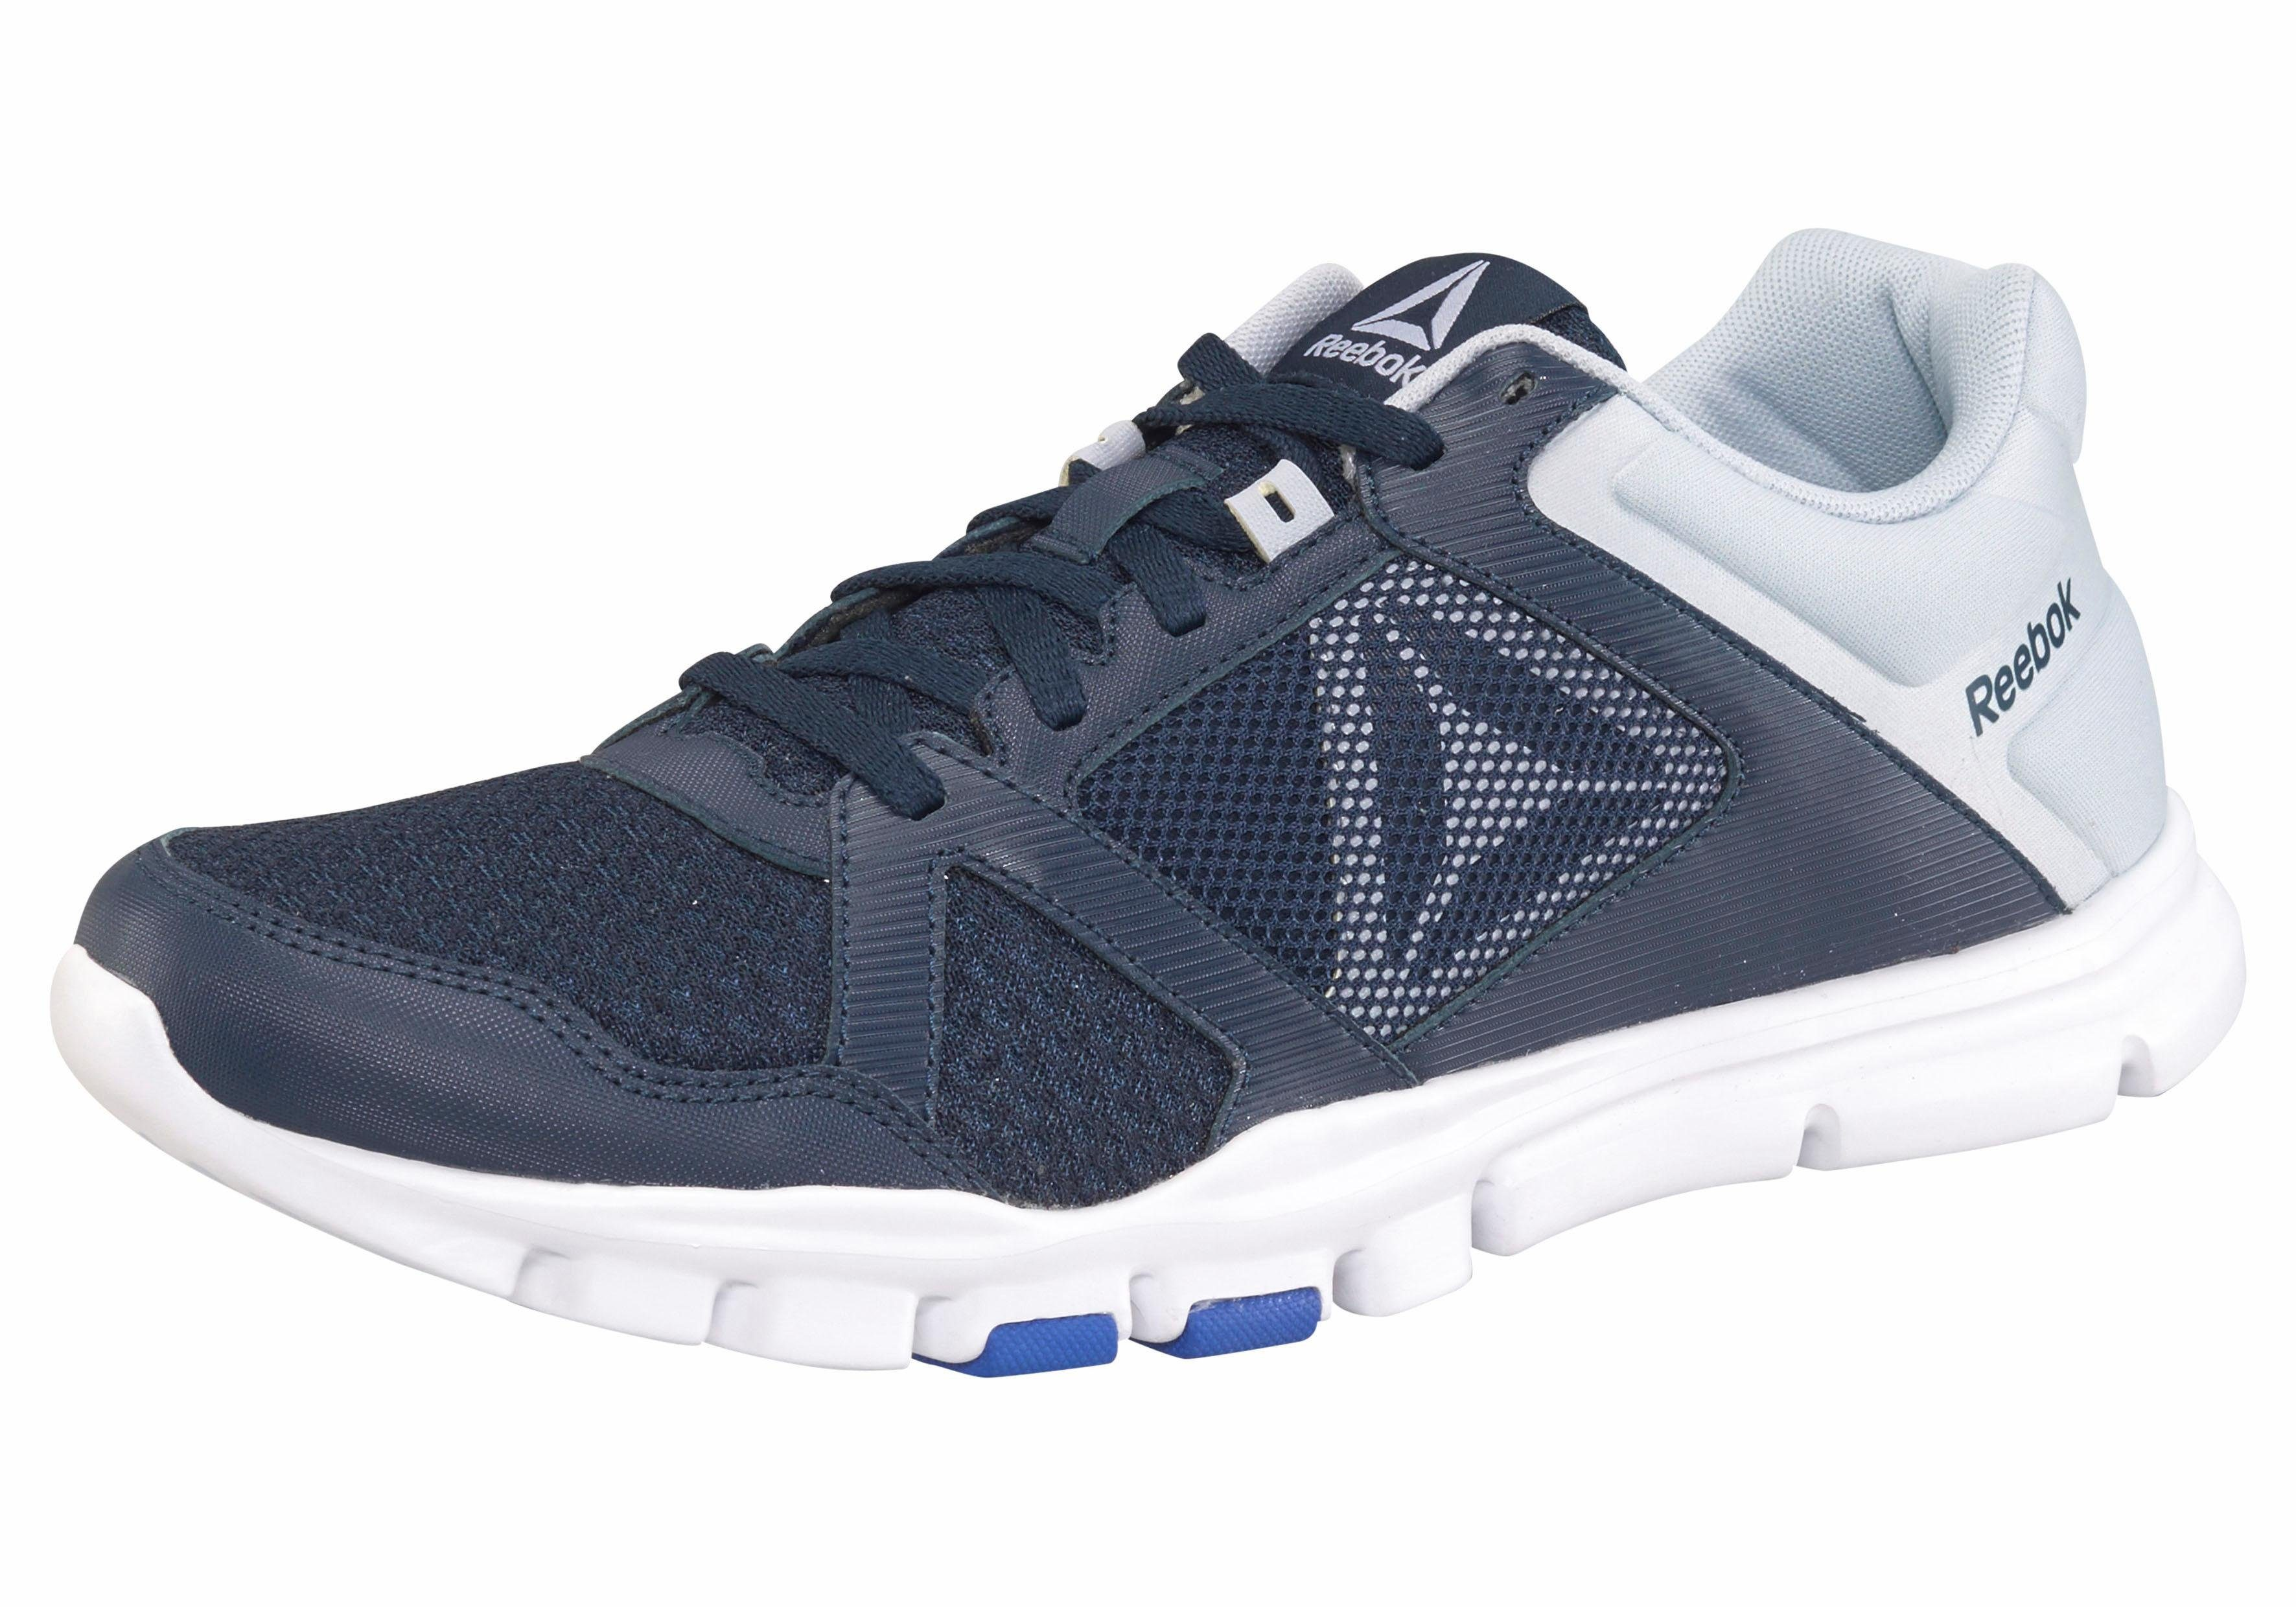 Reebok Yourflex Train 10 Trainingsschuh kaufen  navy